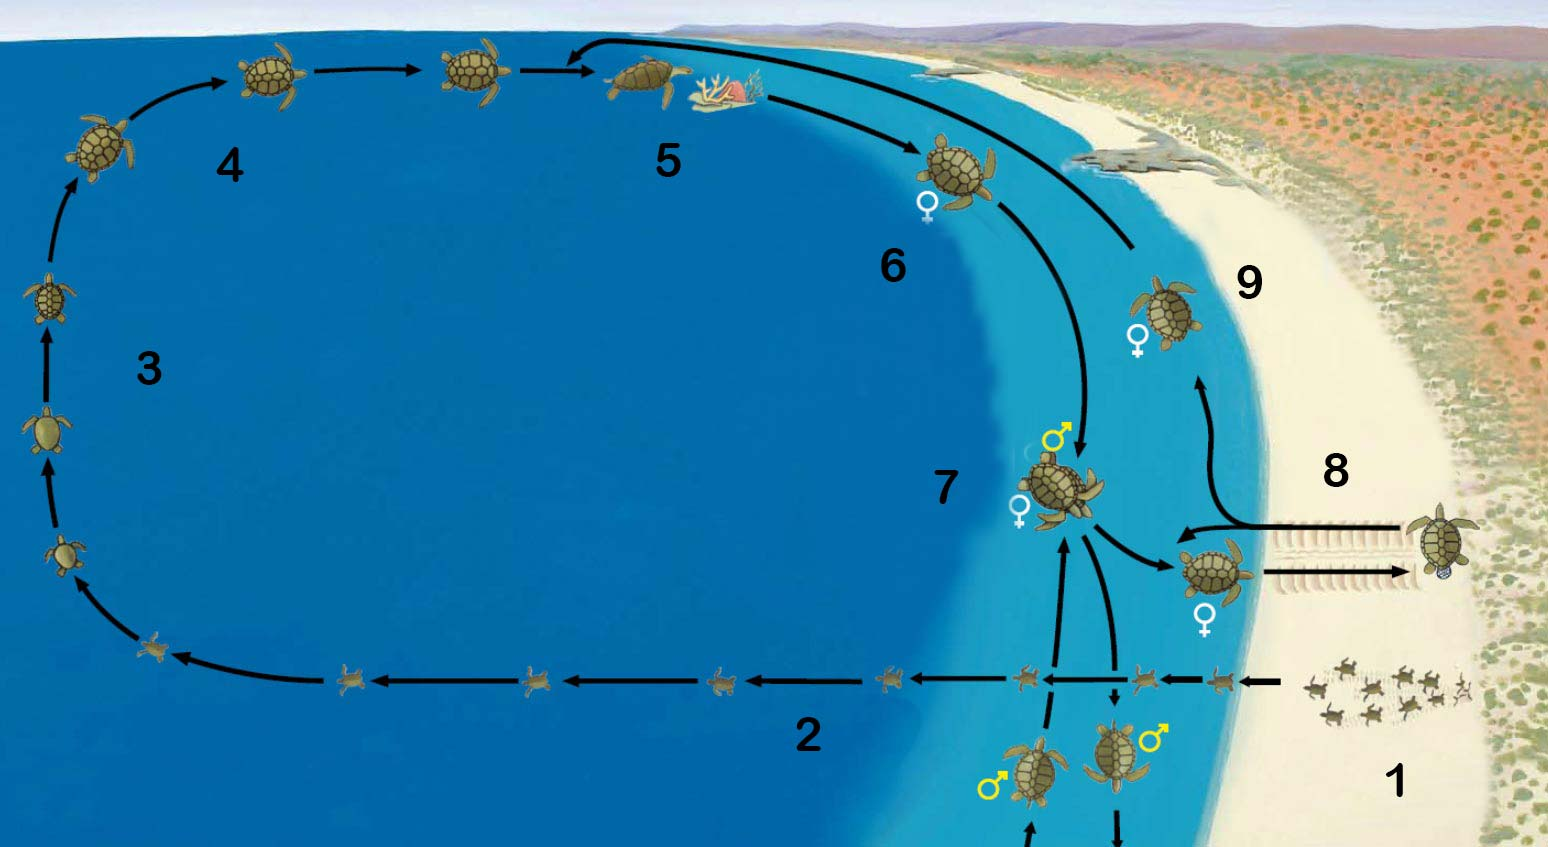 generalised marine turtle life cycle overview